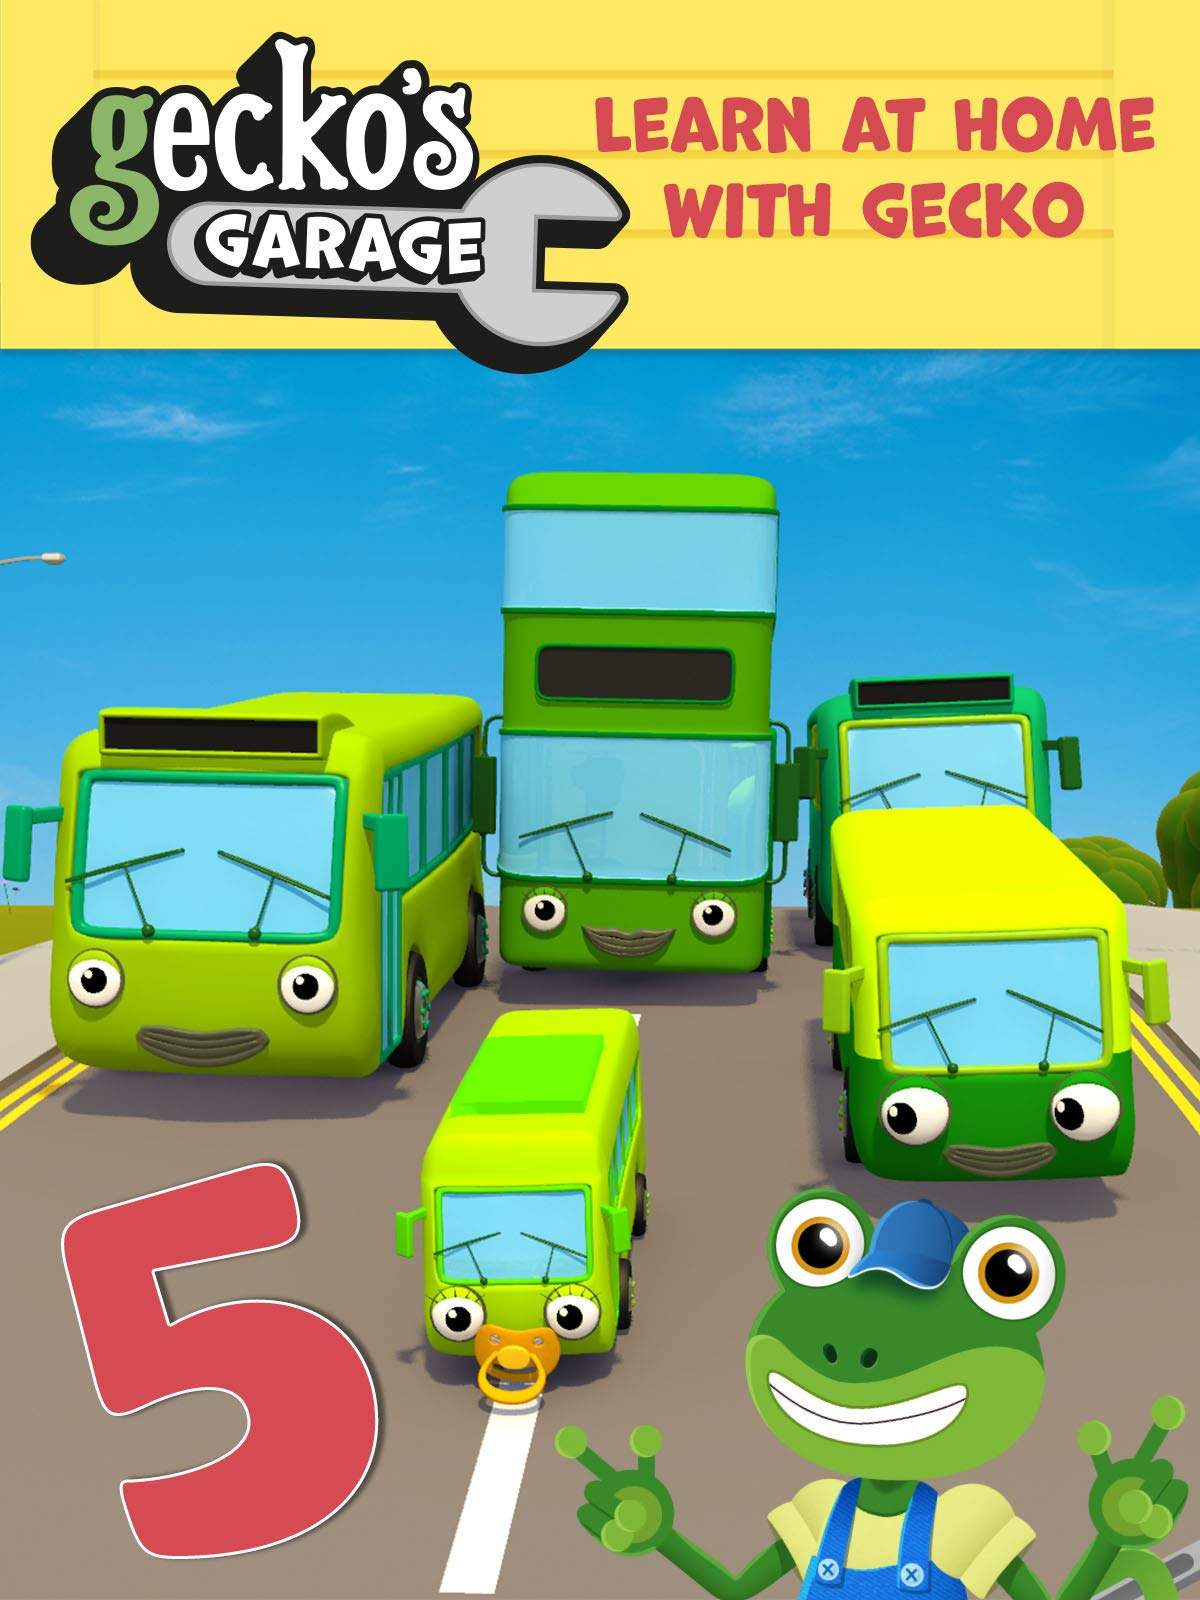 Gecko's Garage - Learn At Home with Gecko